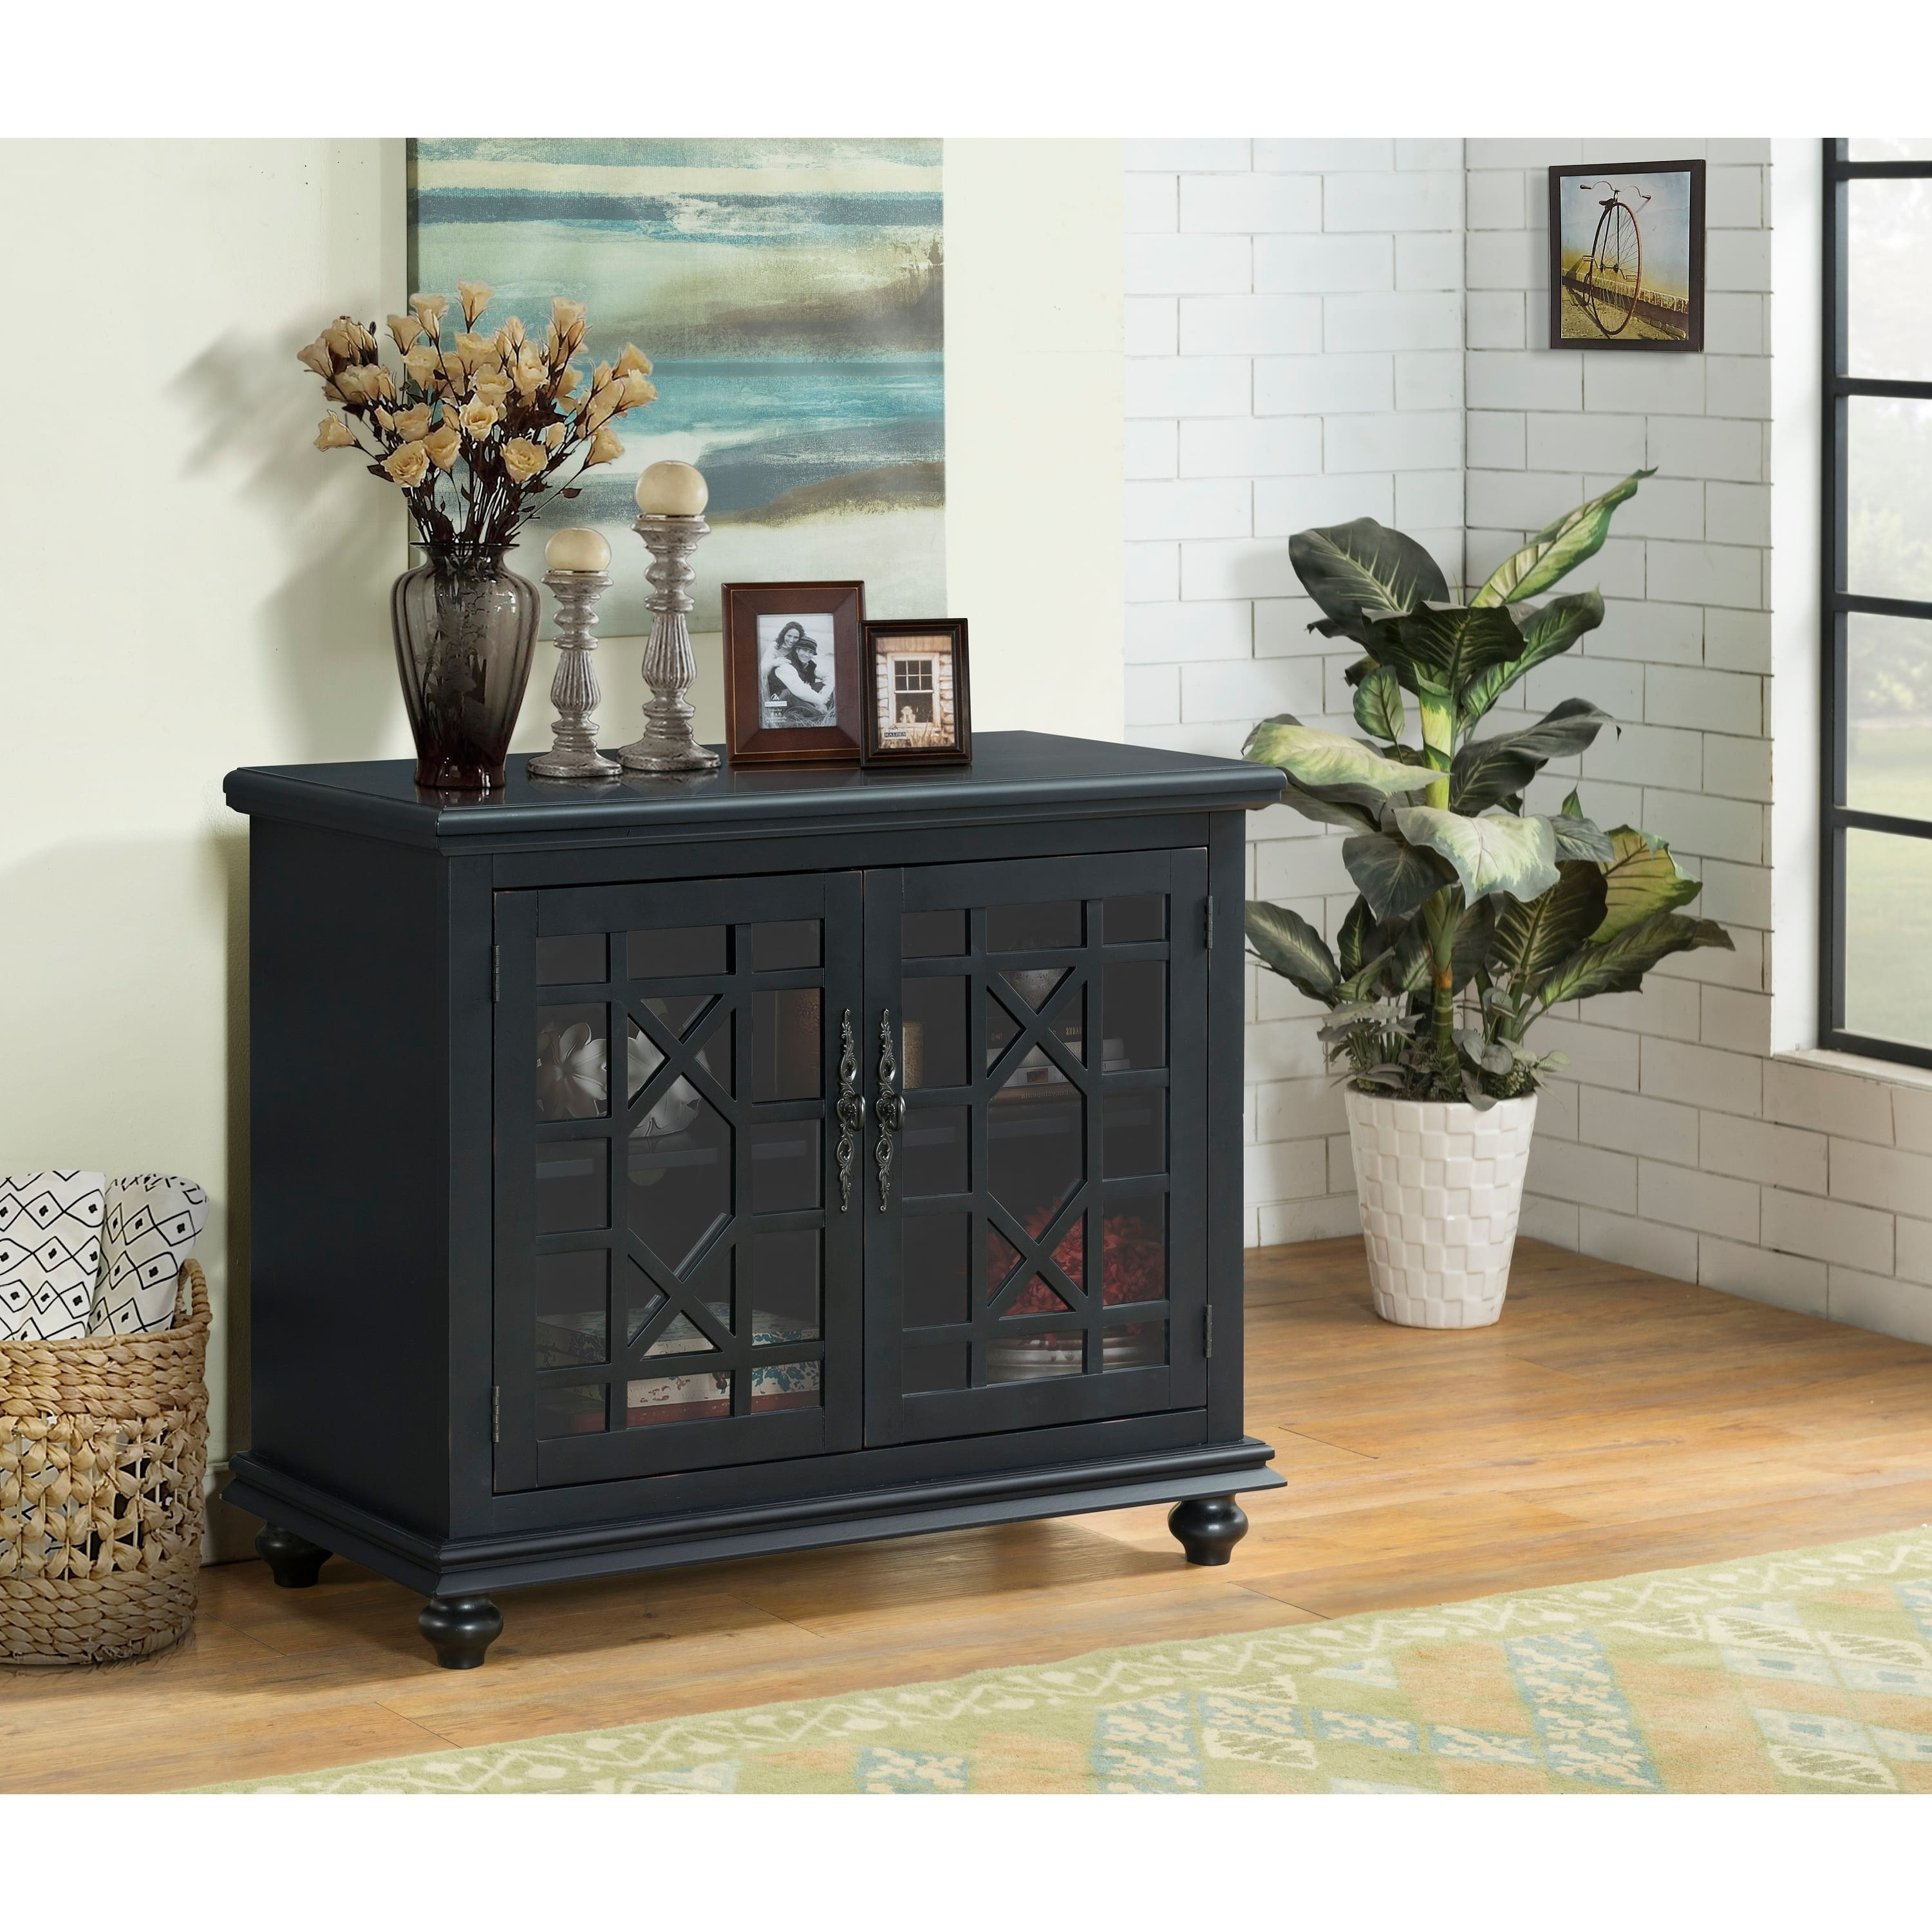 Home Entertainment Spaces: Buy TV Stands & Entertainment Centers Online At Overstock